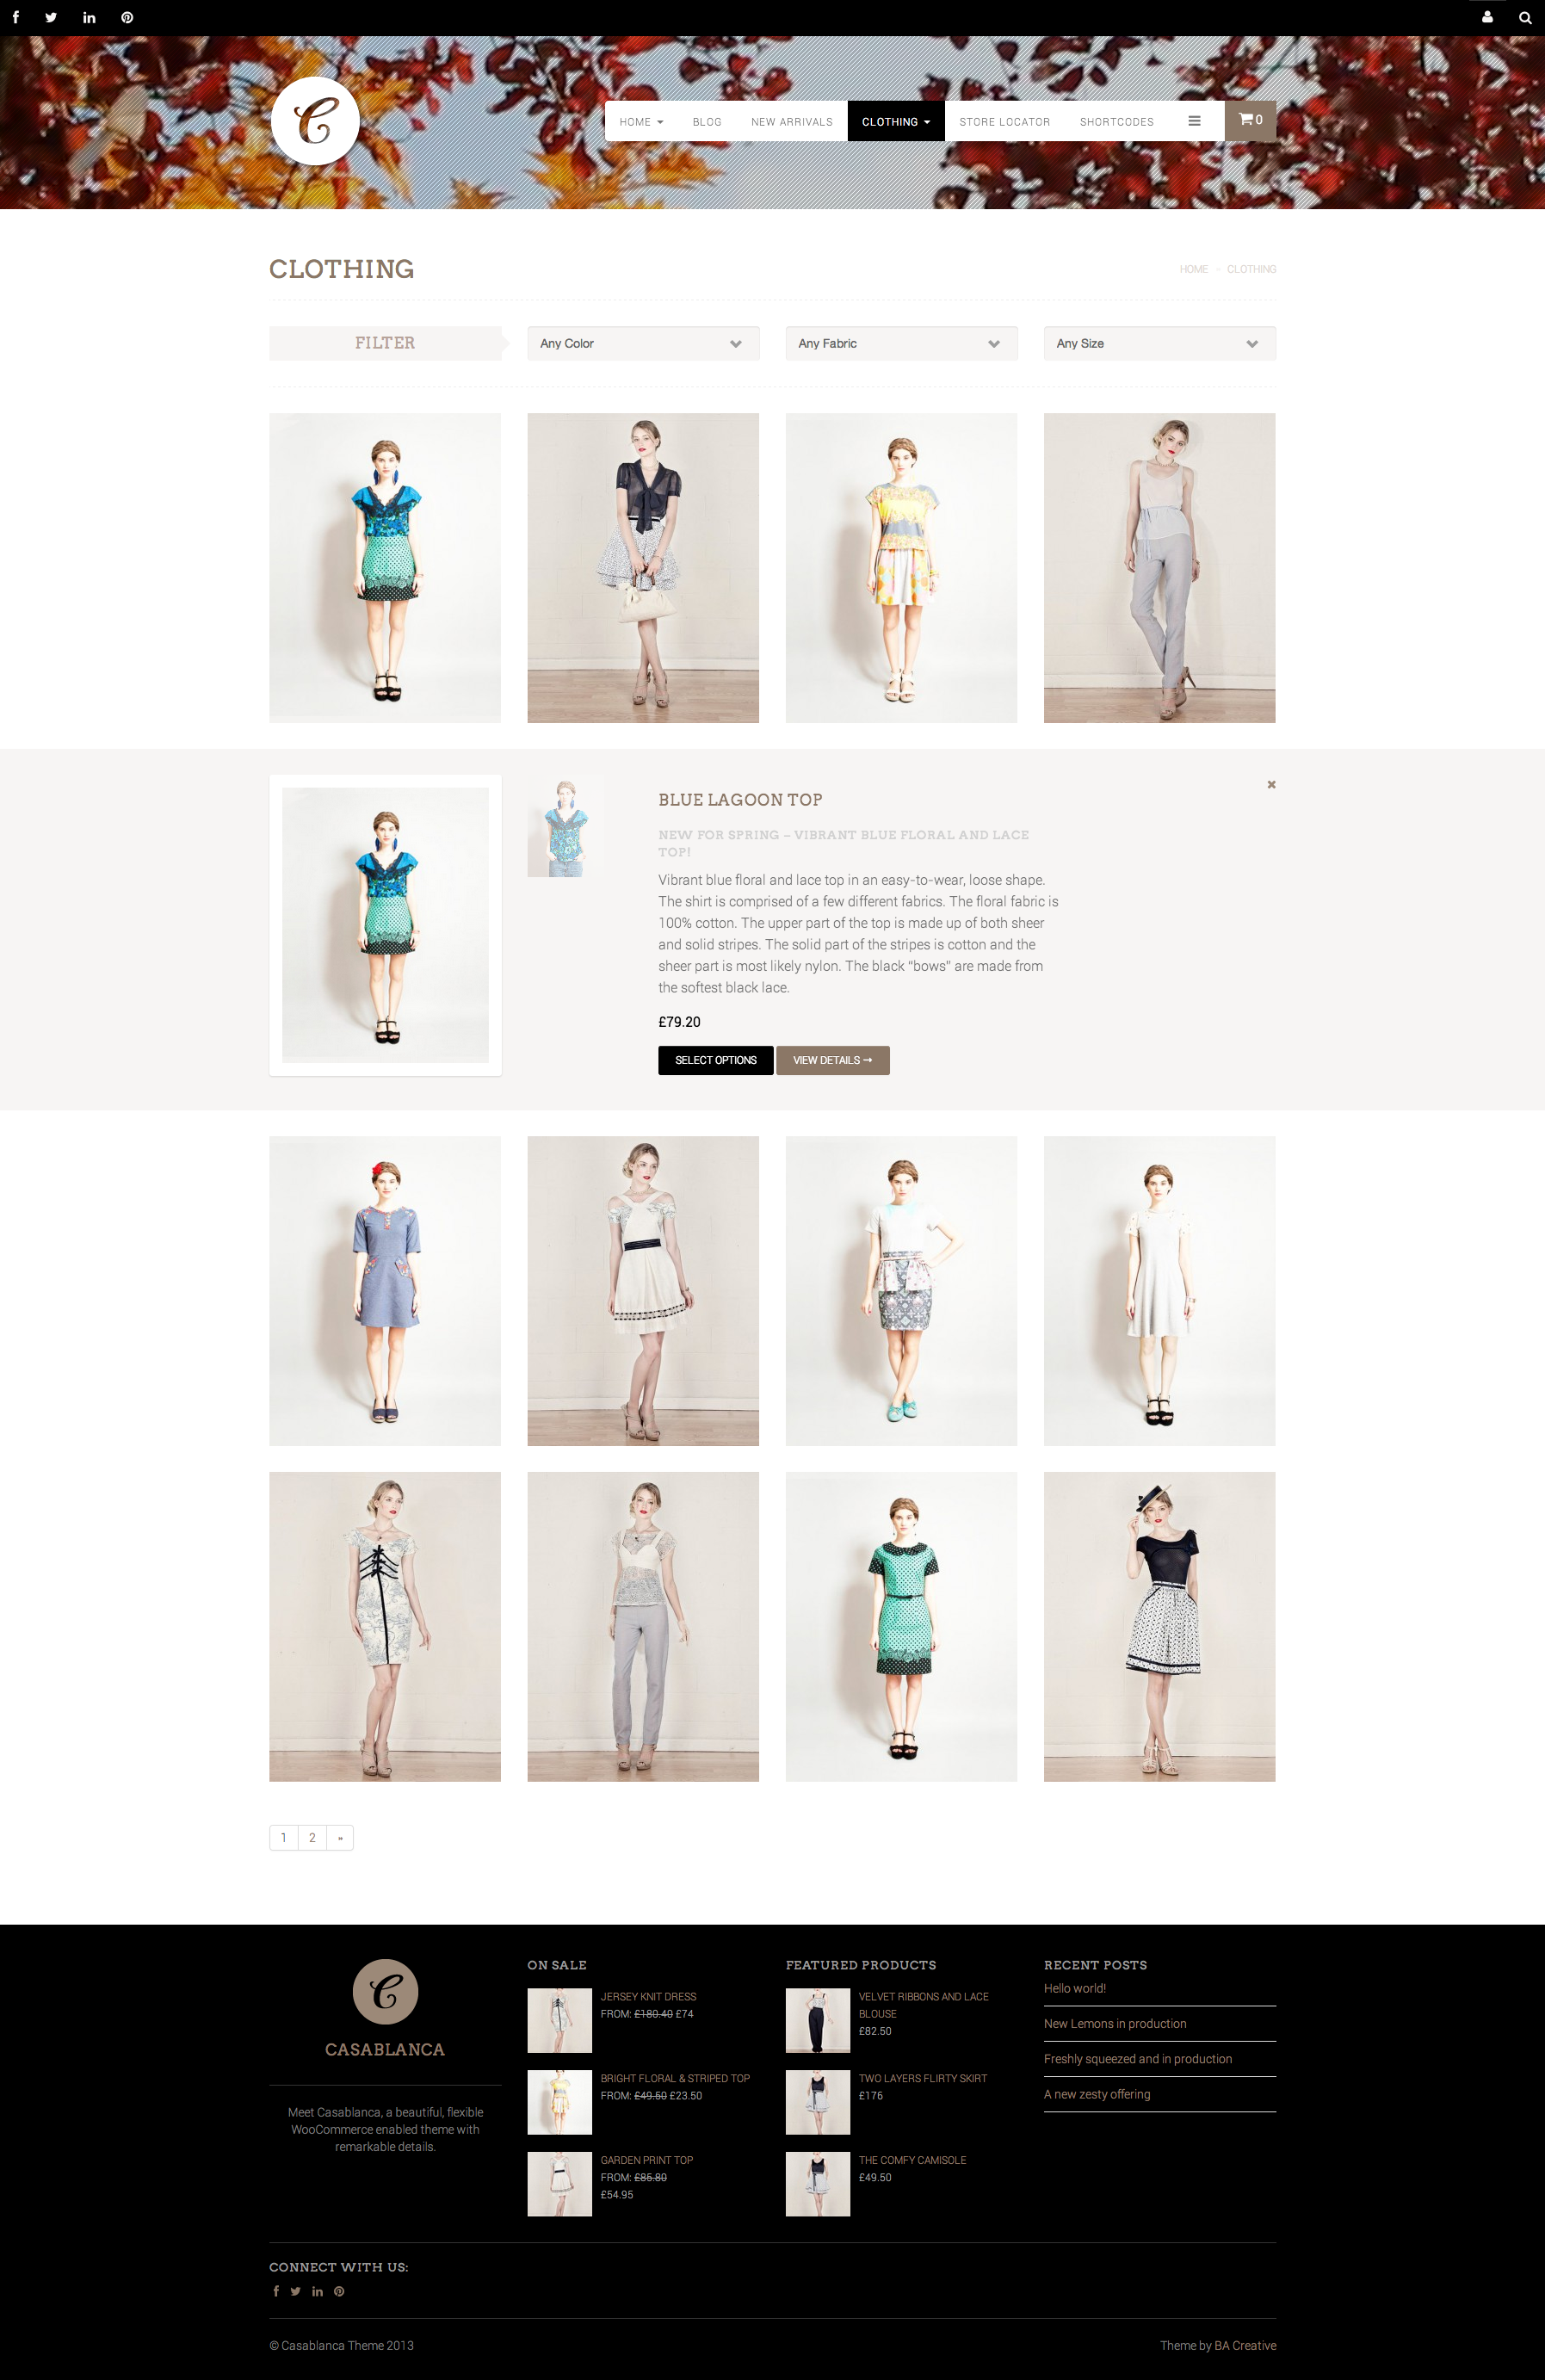 Casablanca Online Store With Background Video - WooCommerce 2.3.5